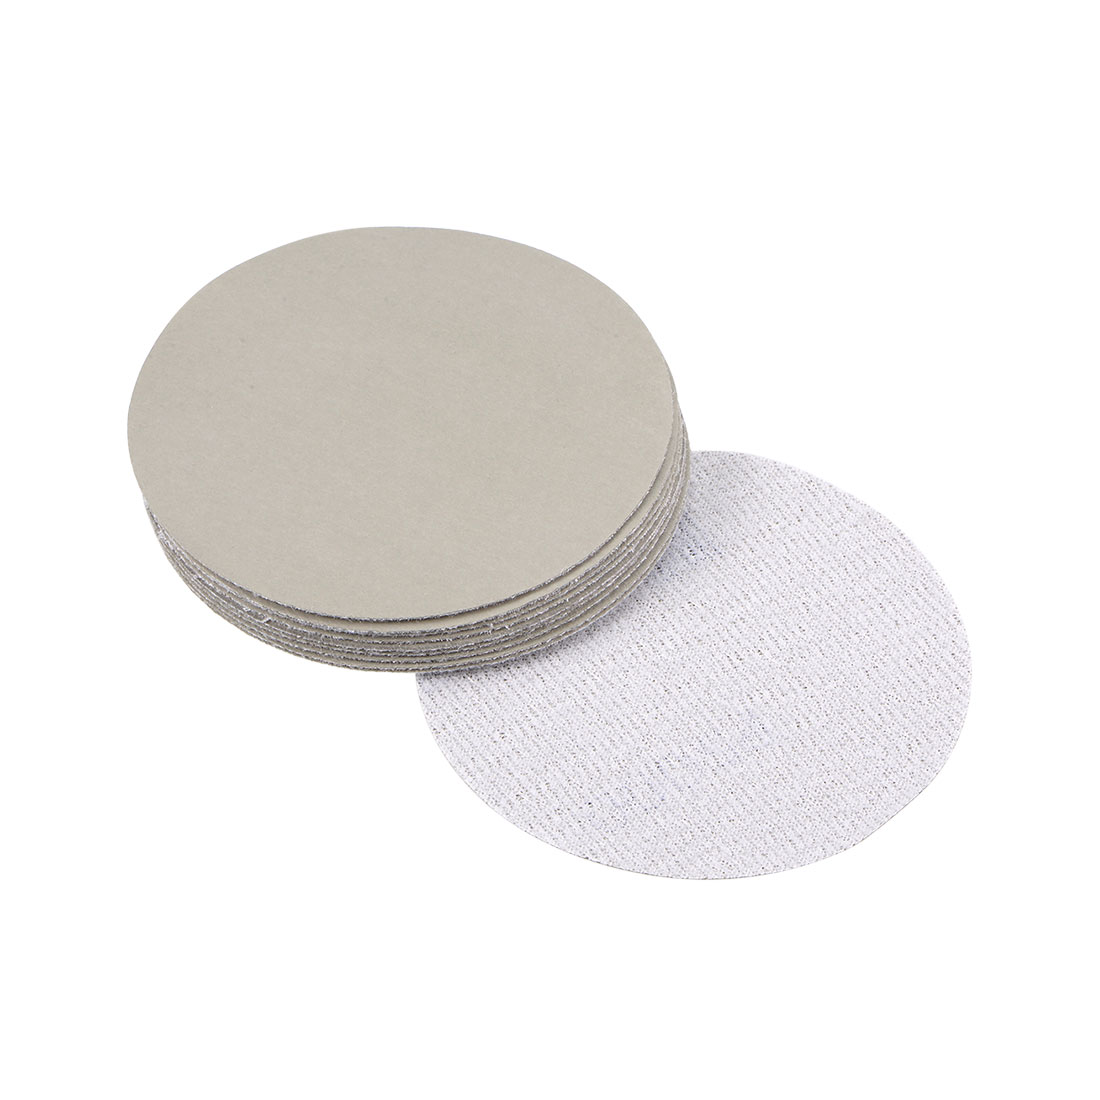 3 inch Wet Dry Discs 5000 Grit Hook and Loop Sanding Disc Silicon Carbide 10pcs